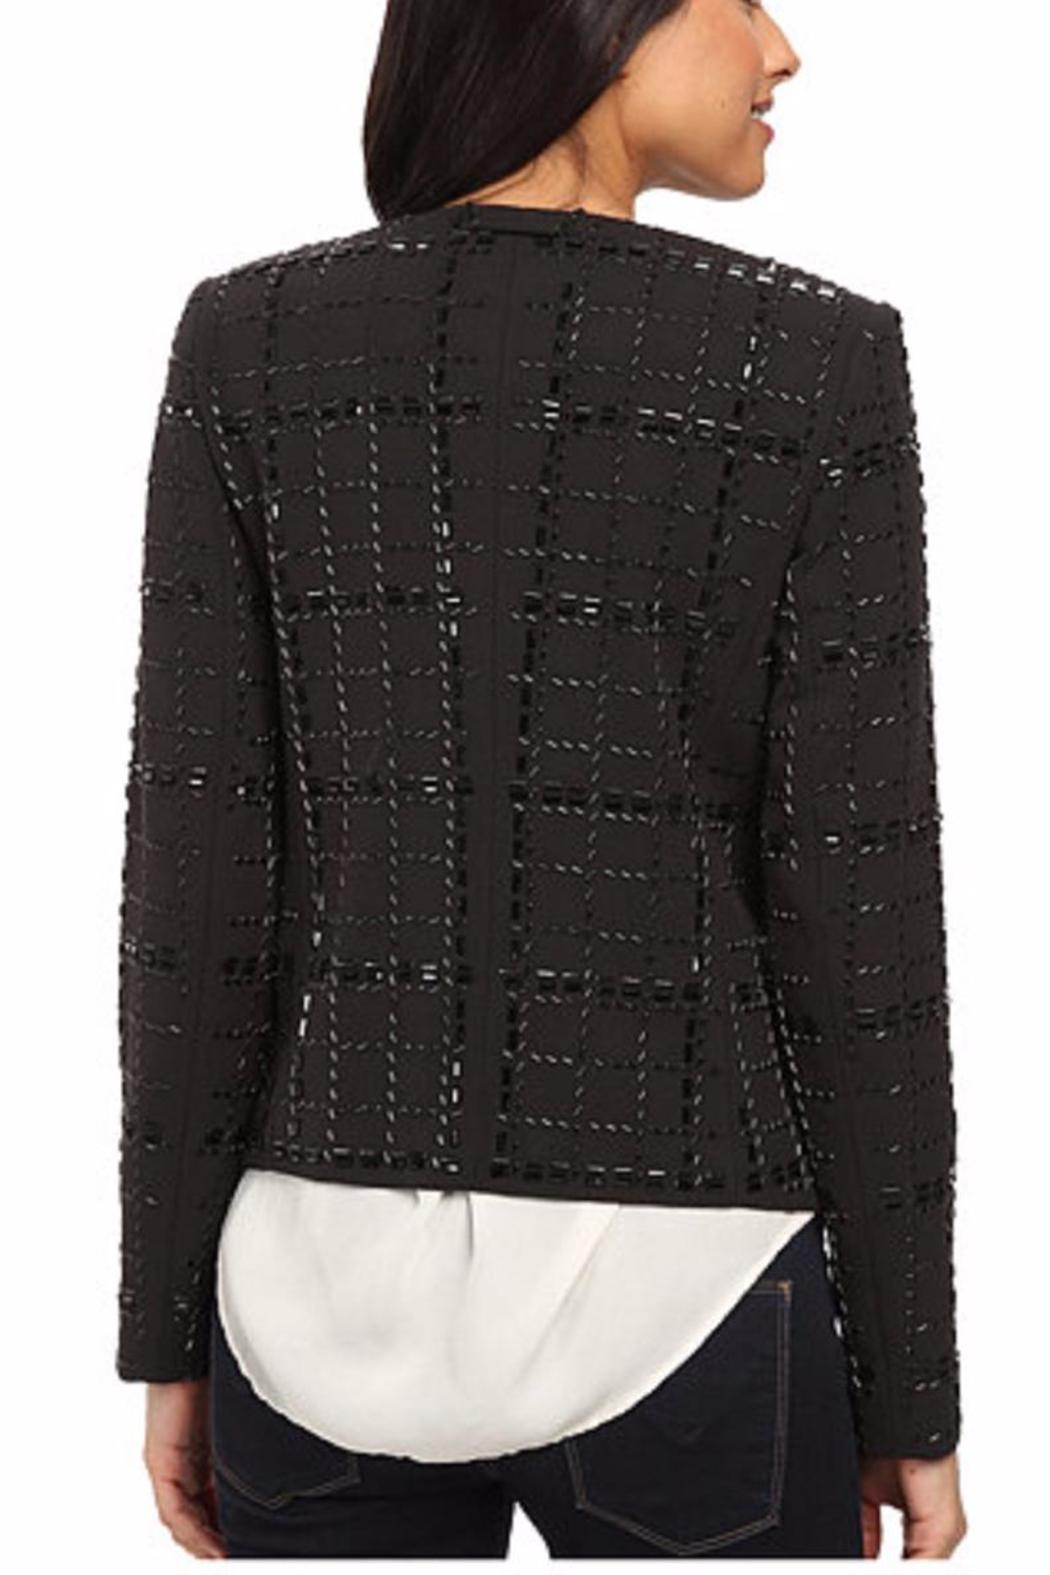 Michael by Michael Kors Collarless Beaded Jacket - Front Full Image